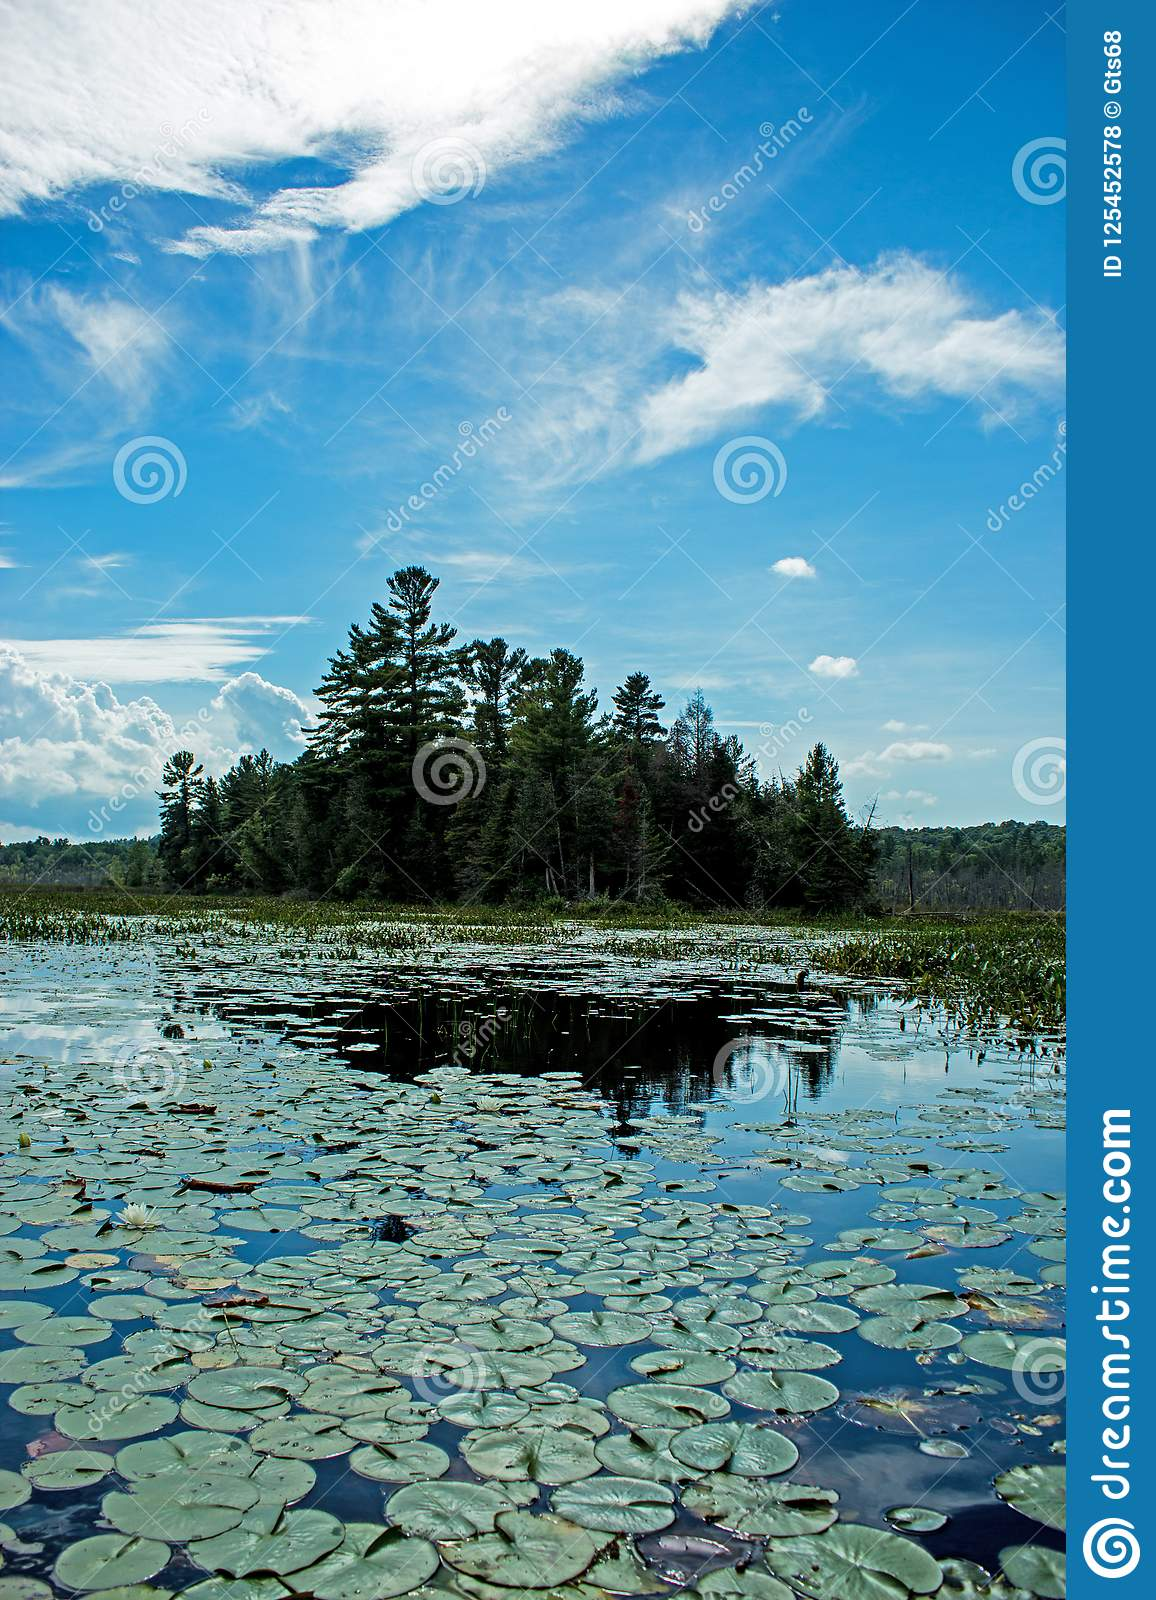 Lily Pads Lead To A Peninsula Covered In Pine Trees